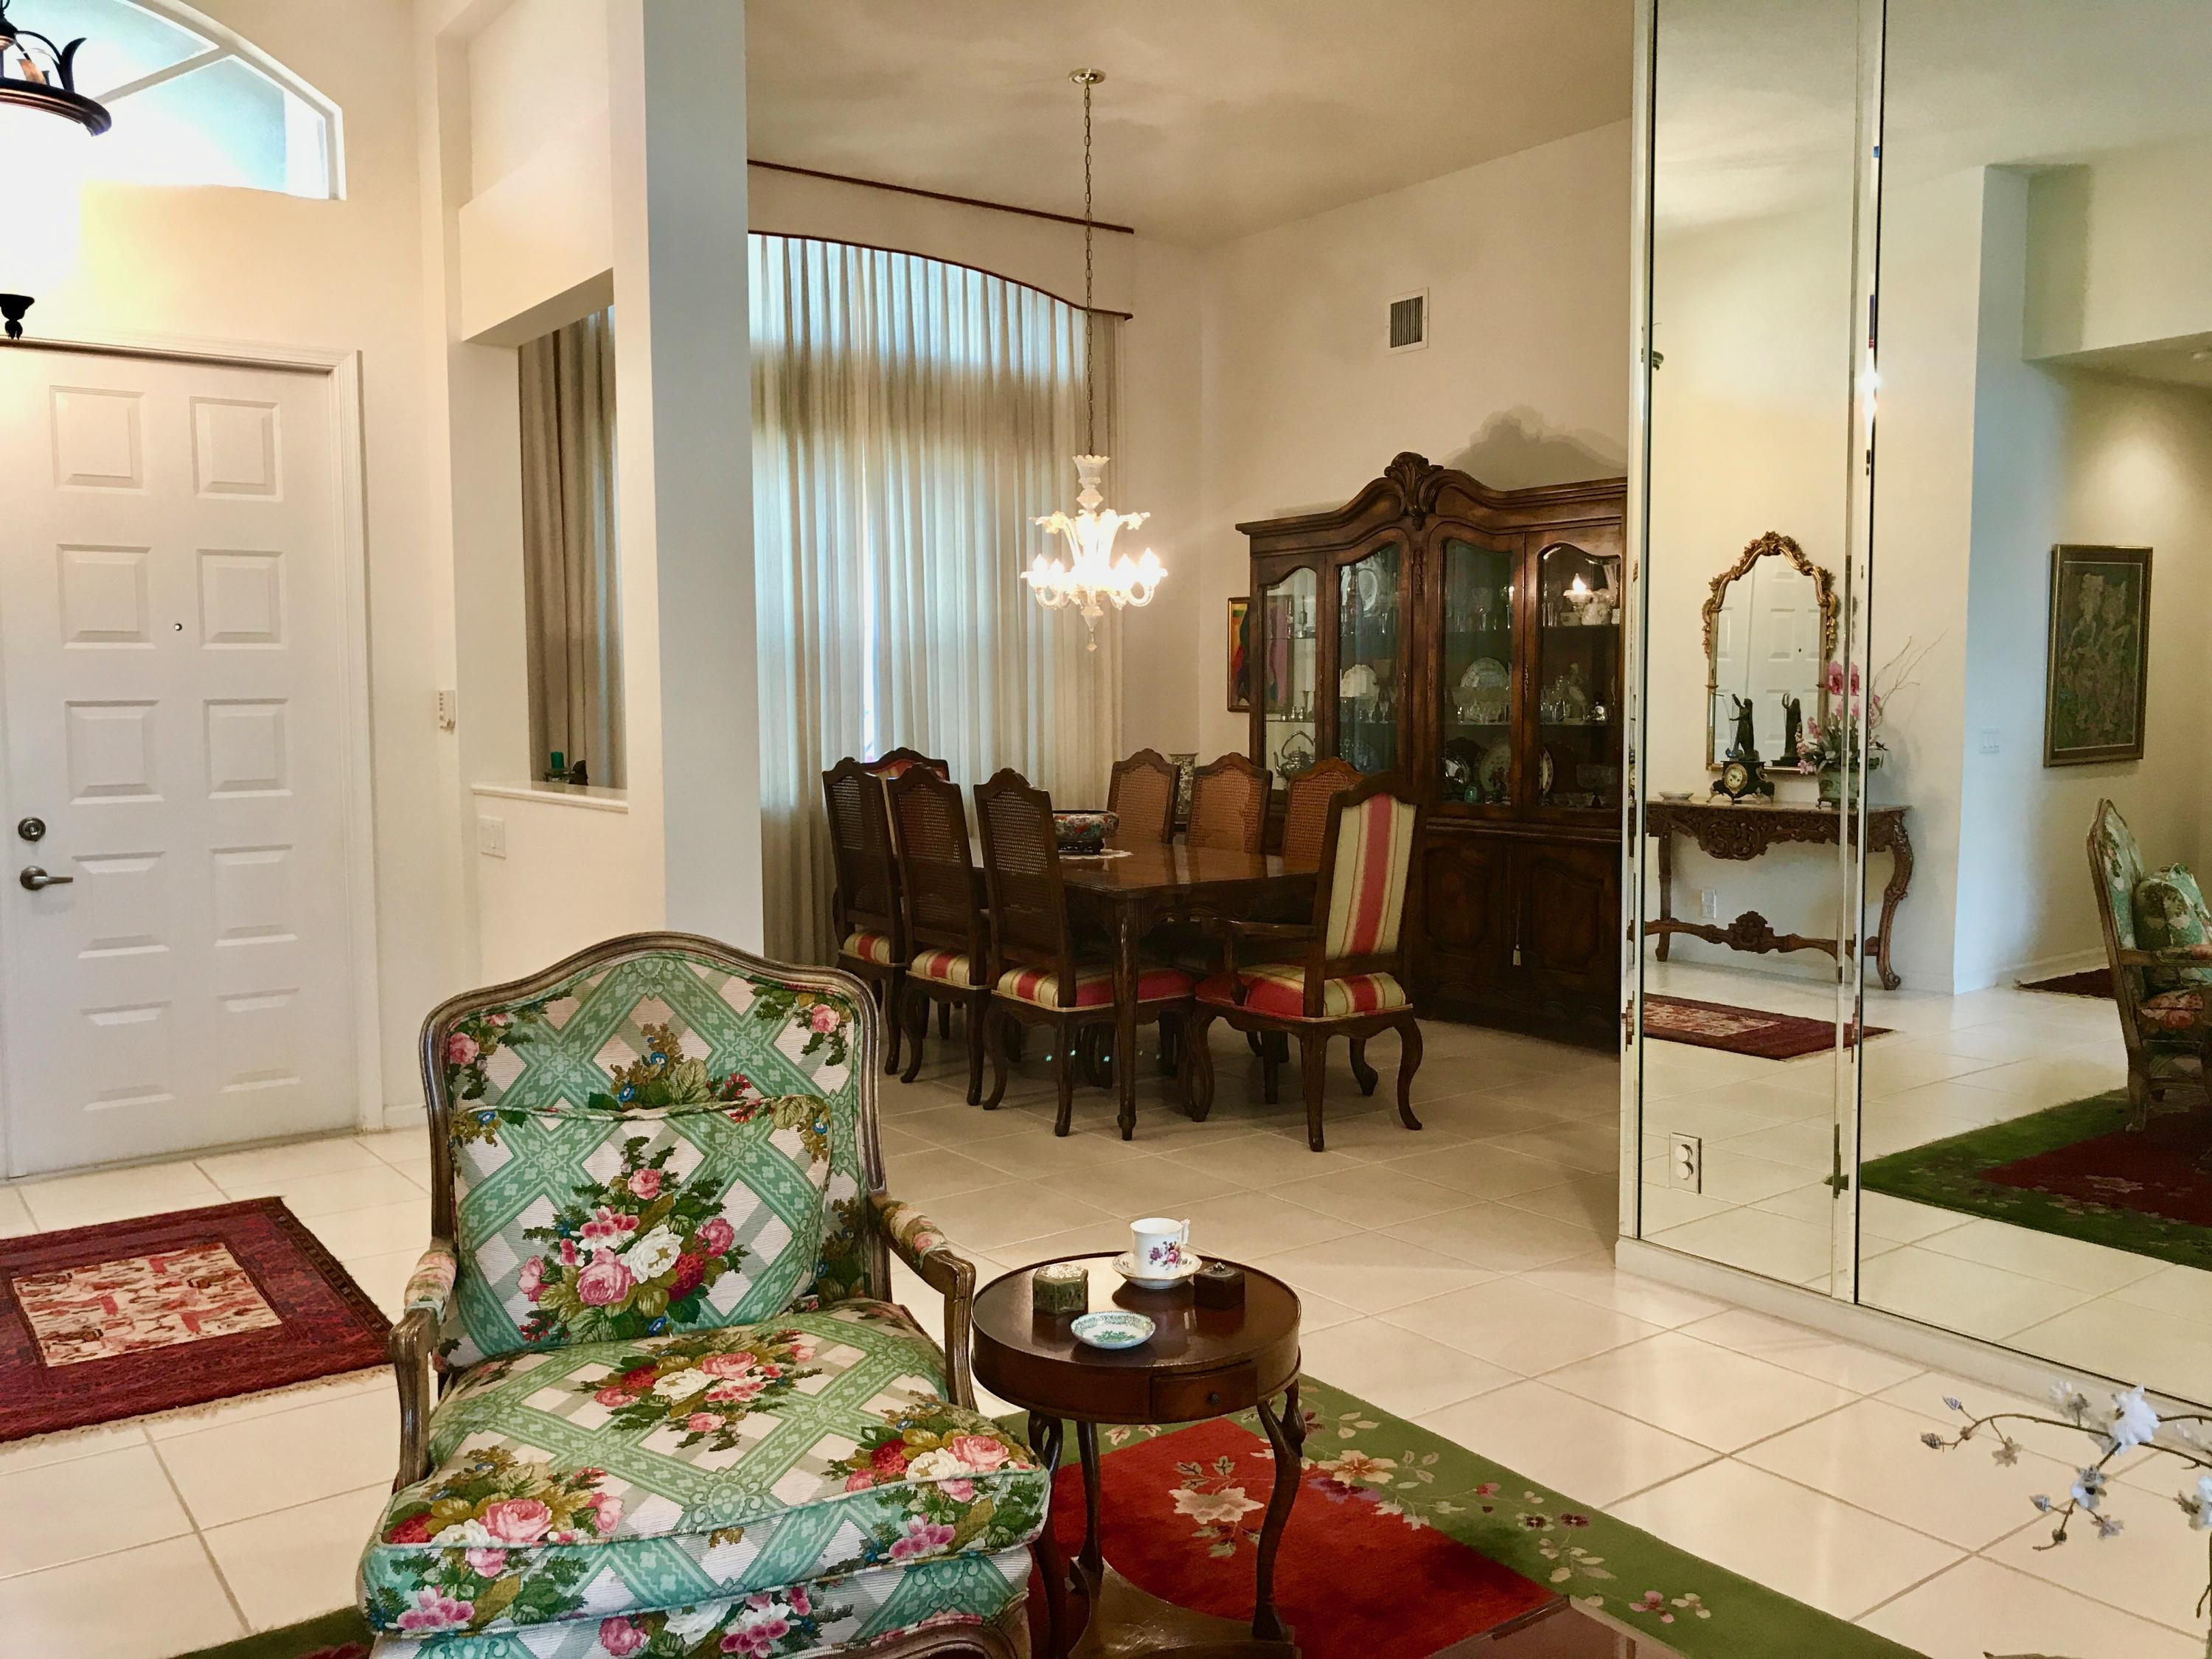 Foyer entry and diningroom